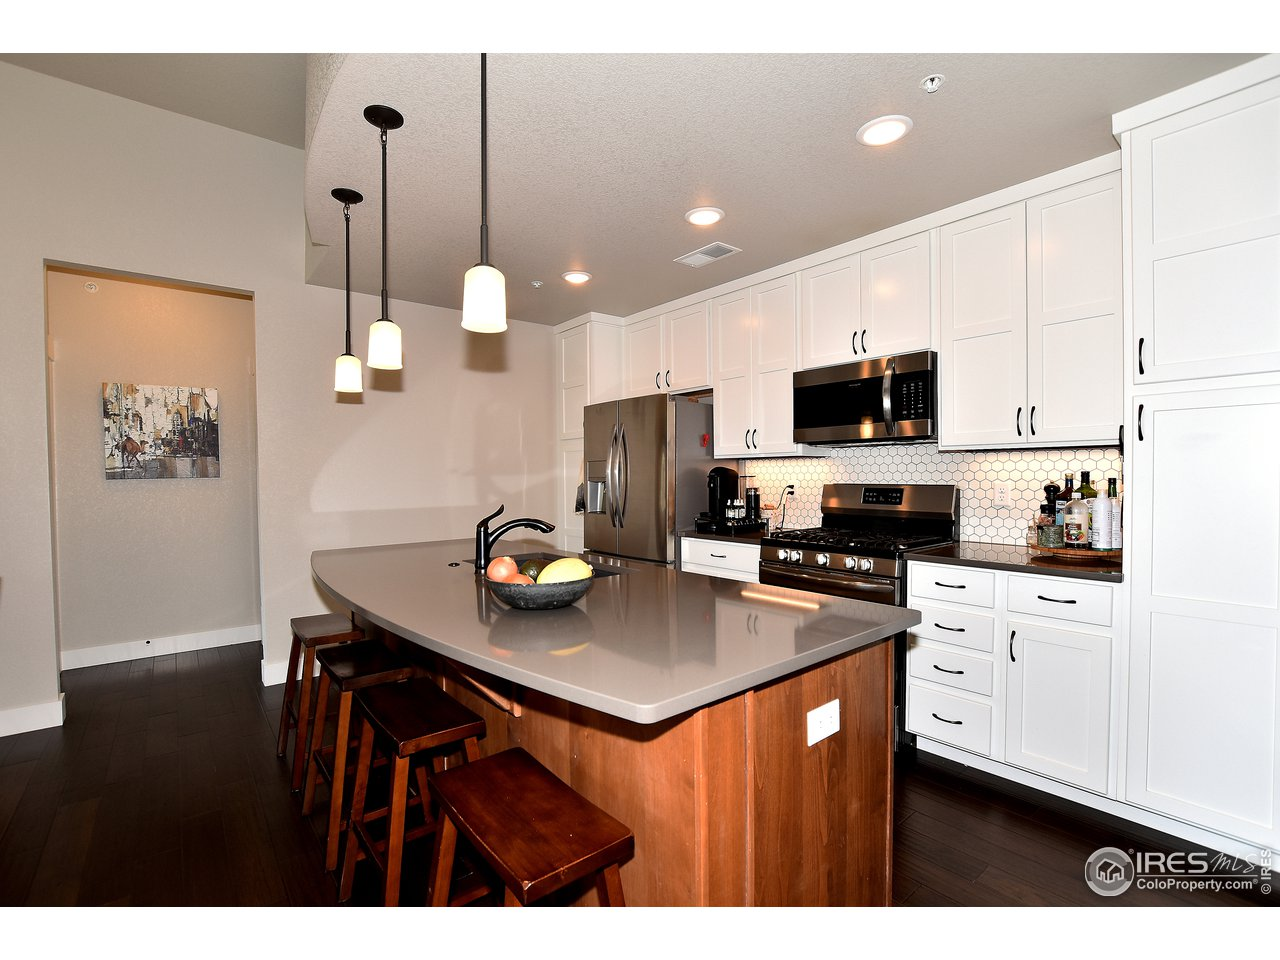 Step into this spacious open floor plan with great kitchen space and vaulted ceilings